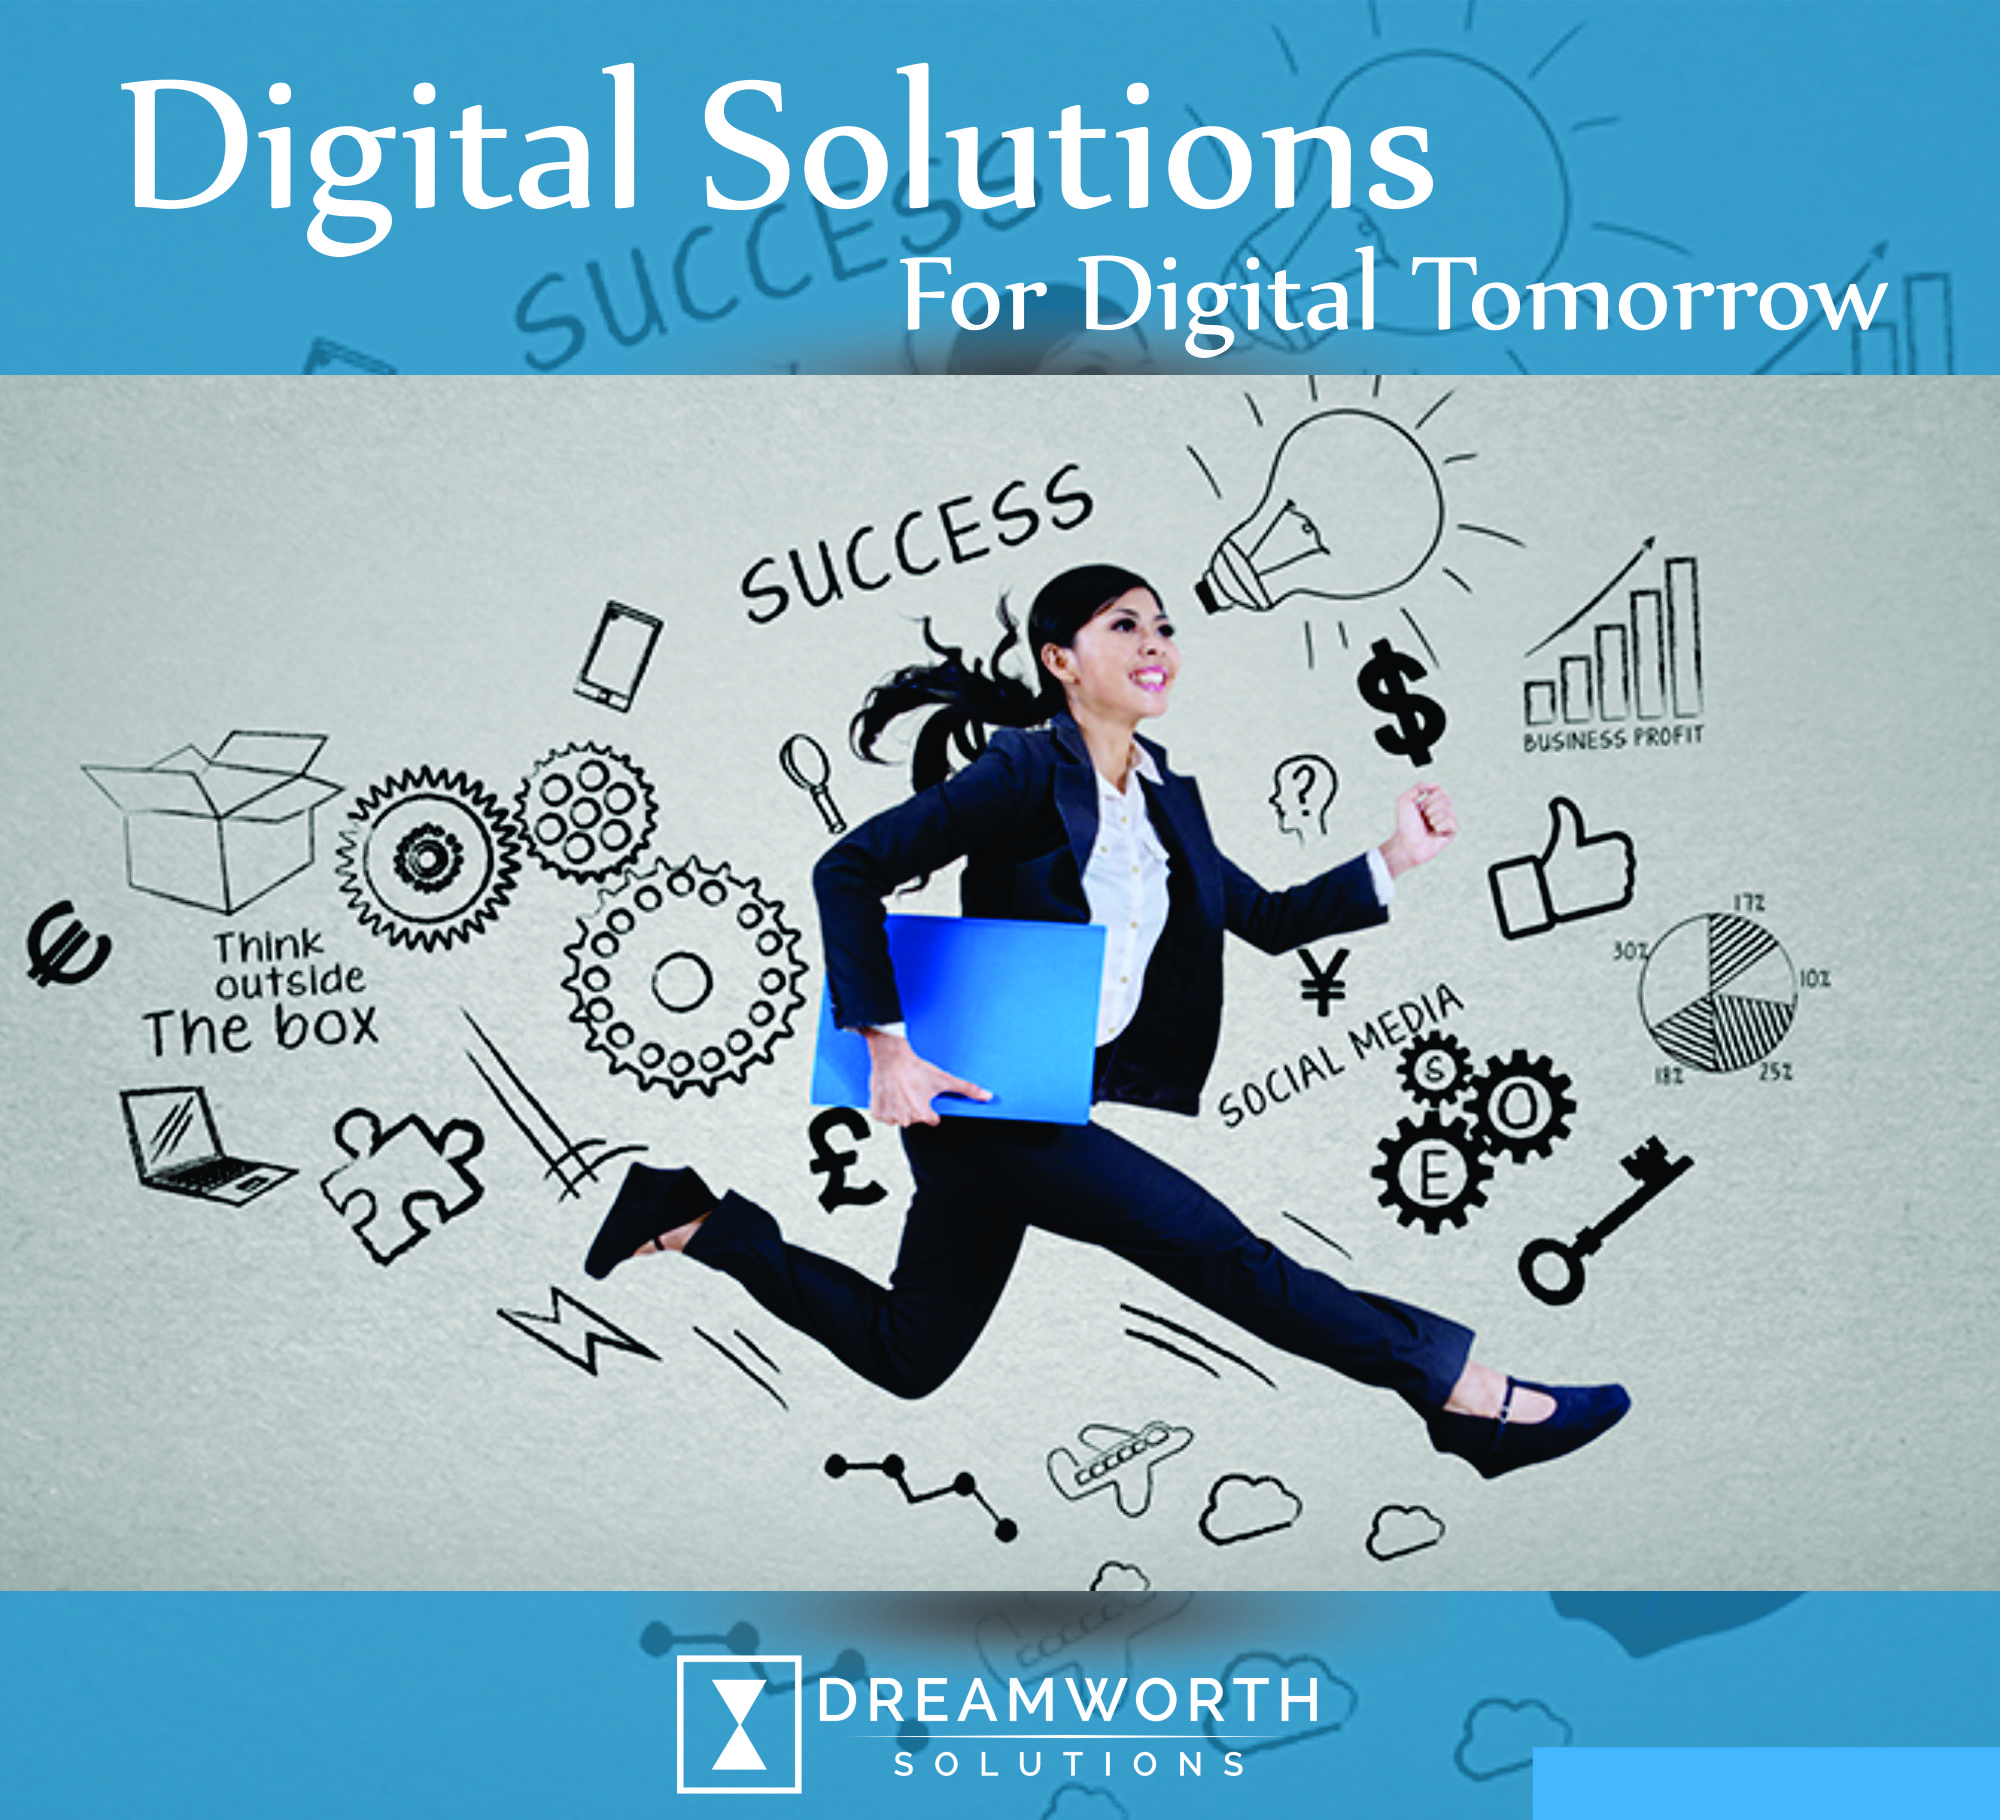 Dreamworth provides the digital solutions for the growth in digital marketing